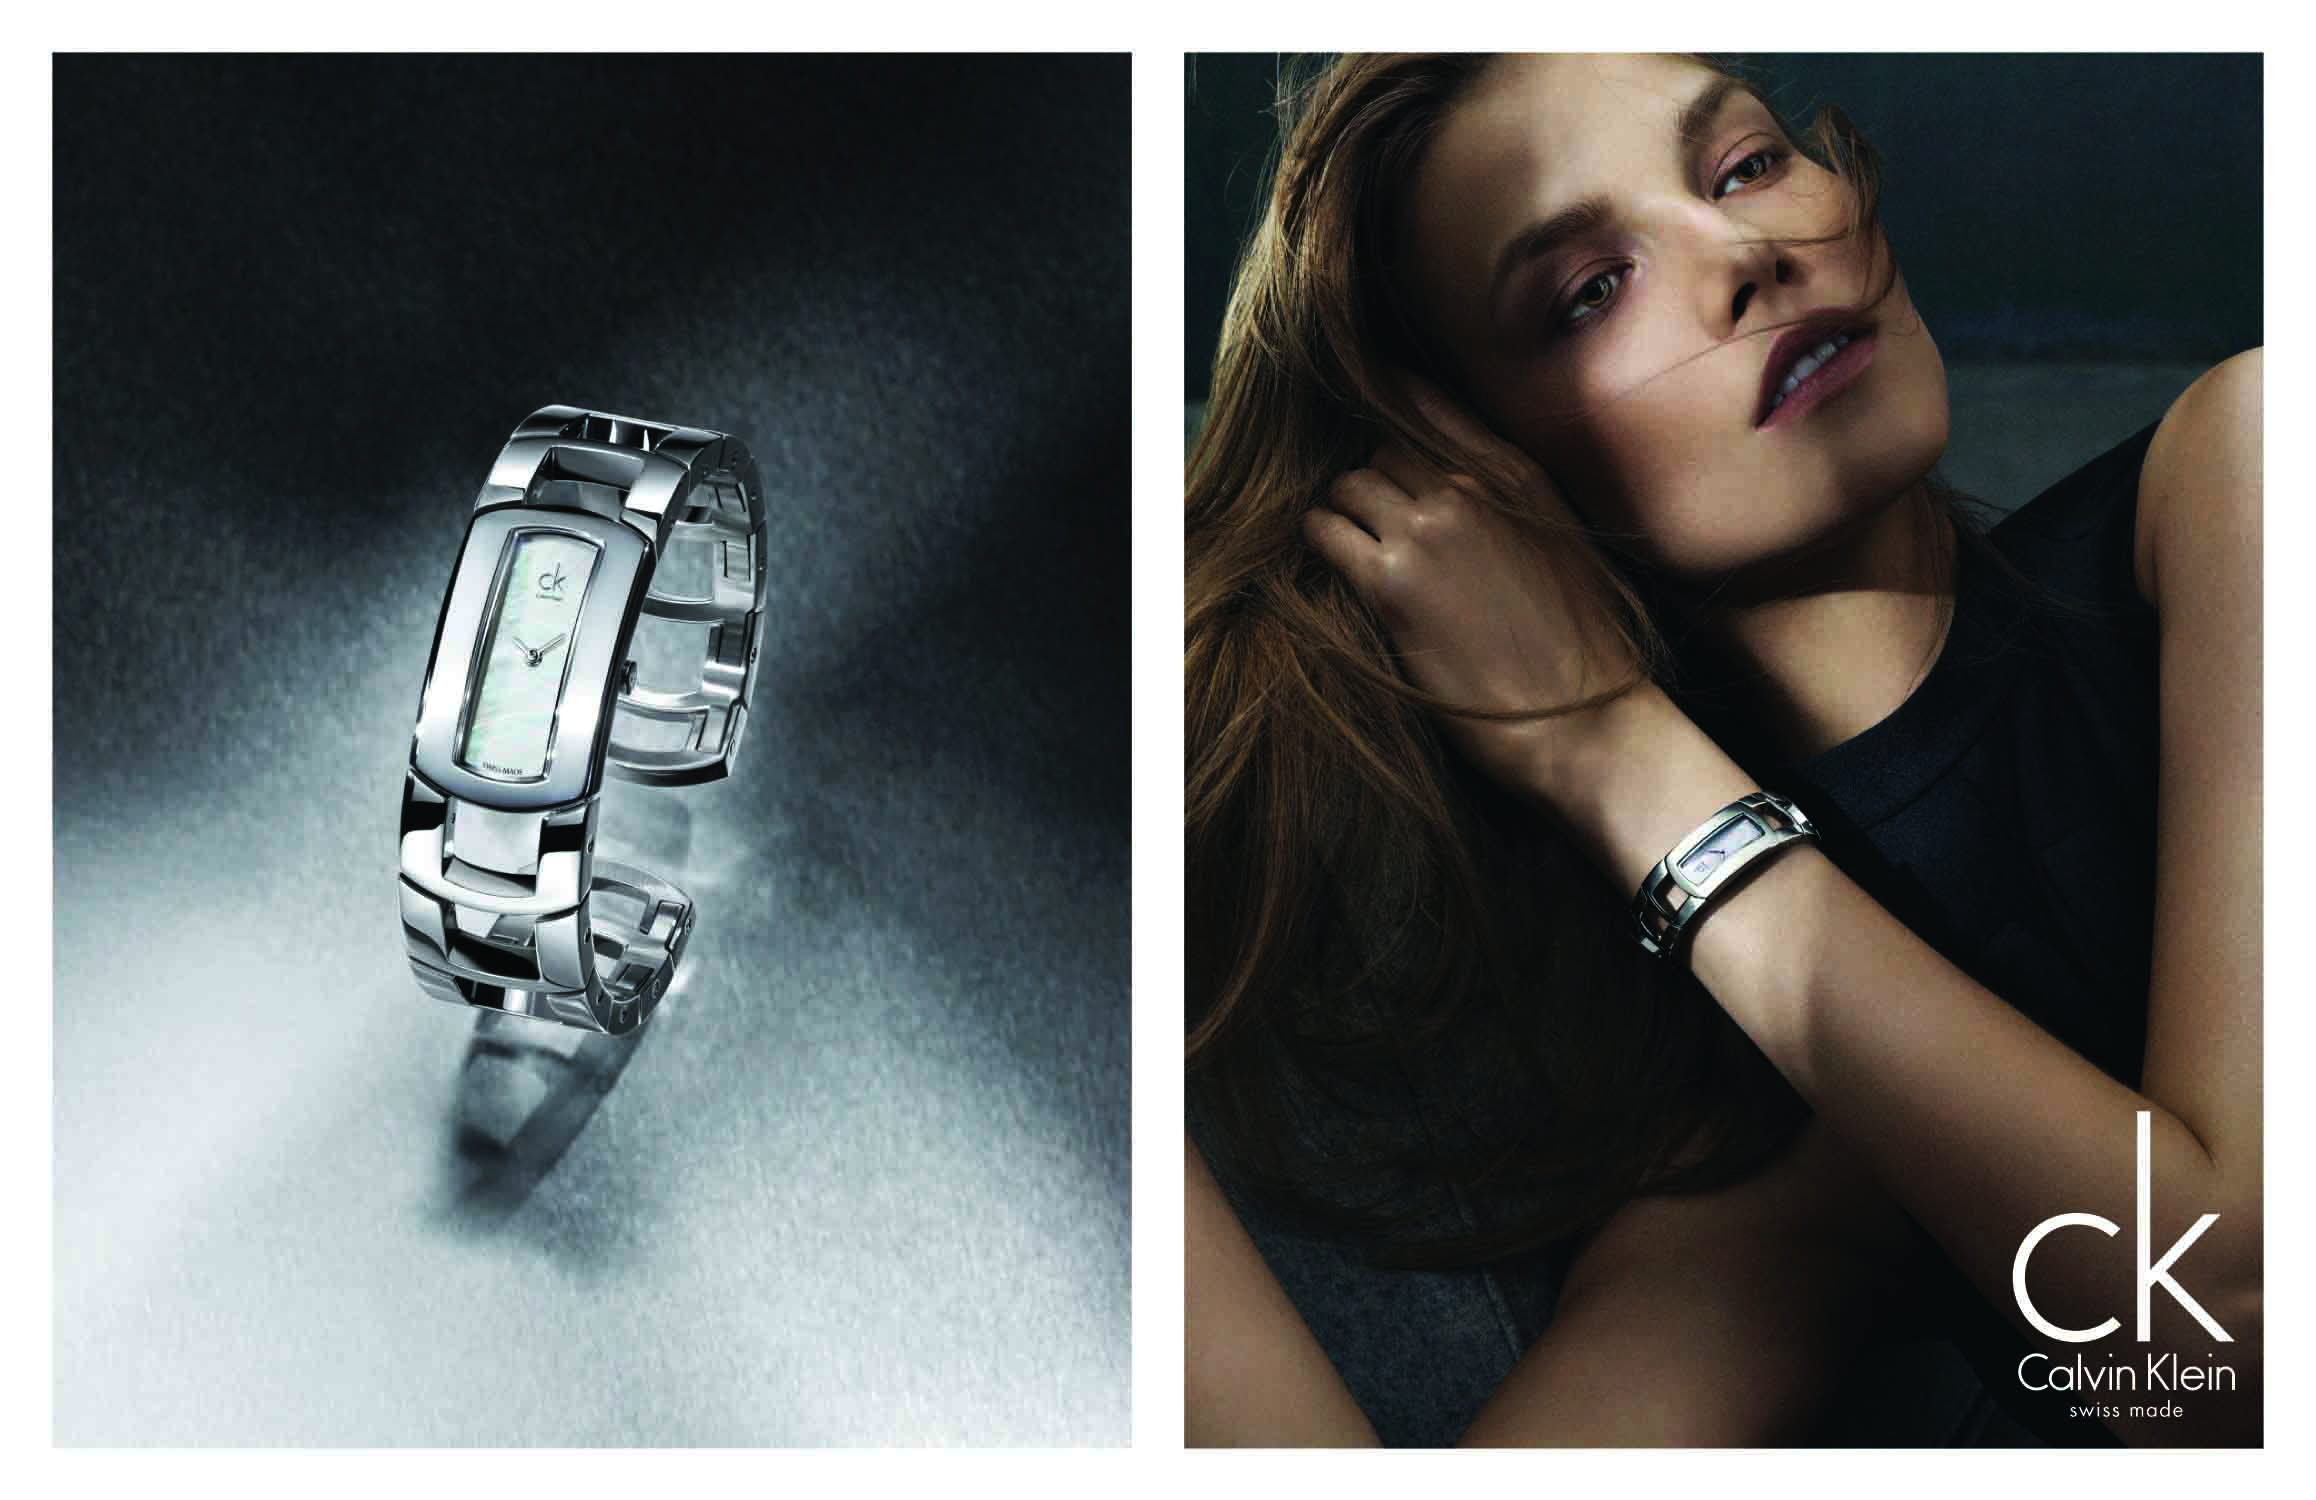 ck-watches+jewelry-basel-rebranding-w_ph_jansson,mikael_sp01